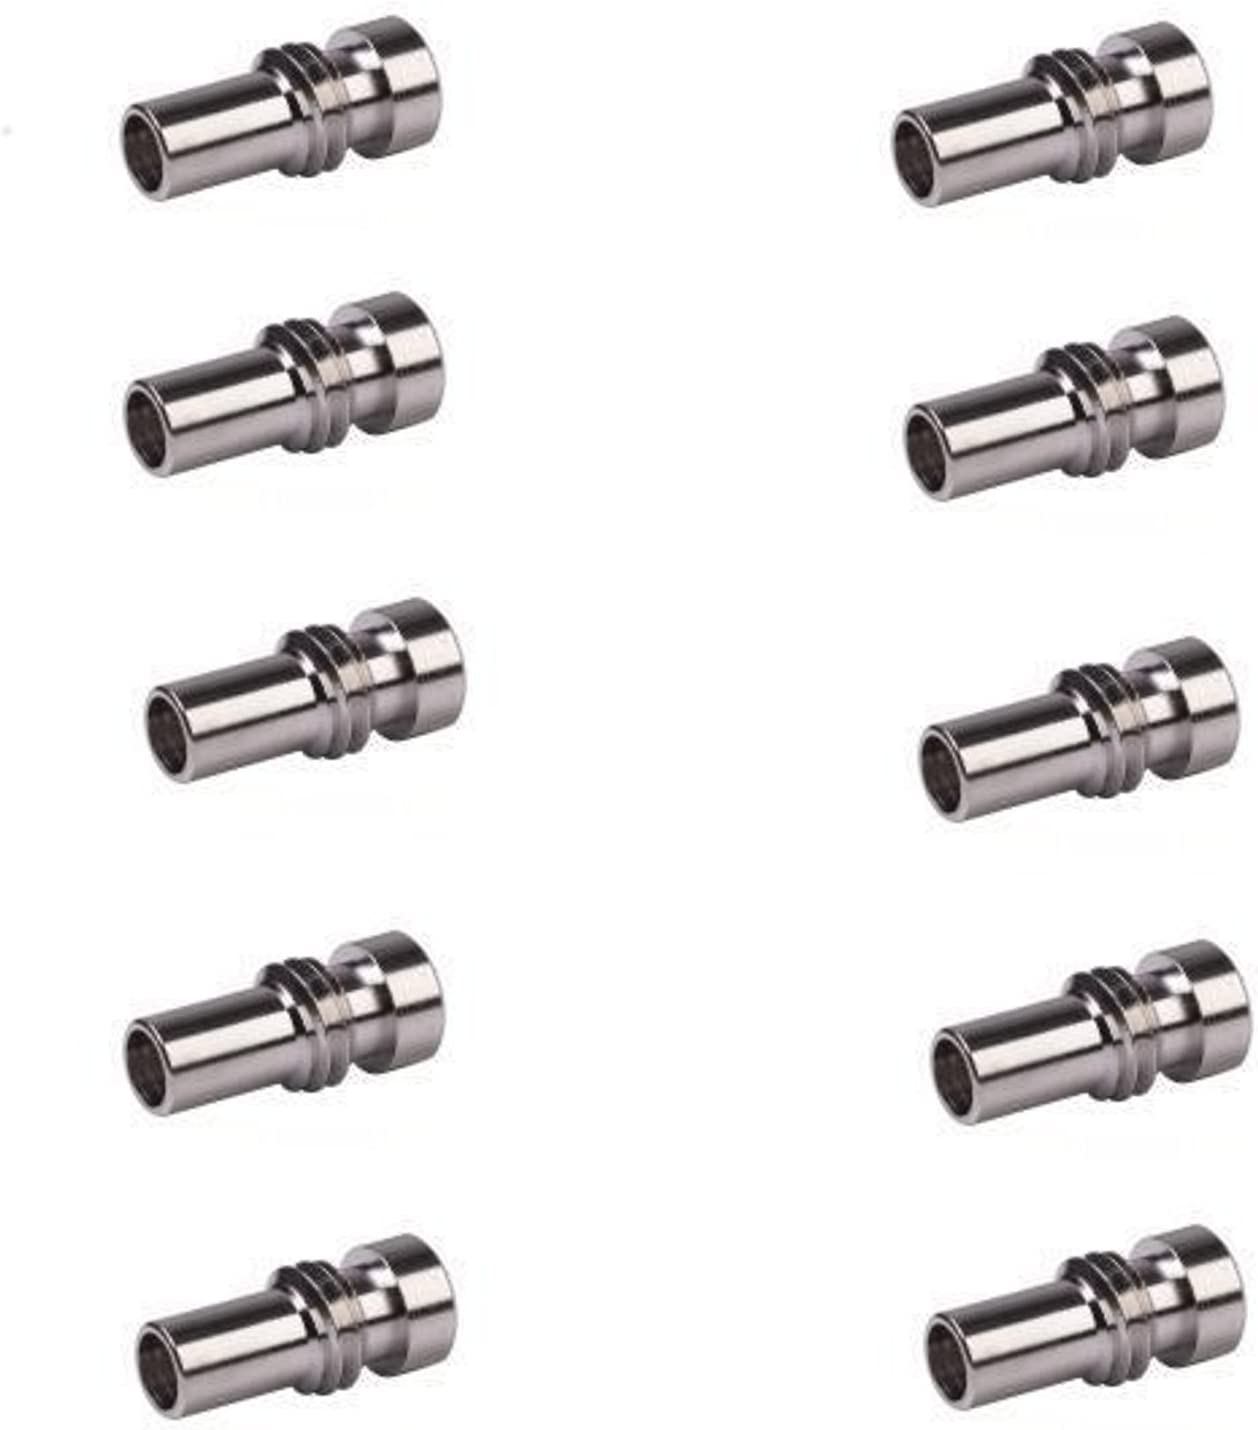 Pro Trucker Platinum Series PL-259 UG-176 Reducer for RG-8X Mini-8 RG-59 Coax Cable 10 Pack